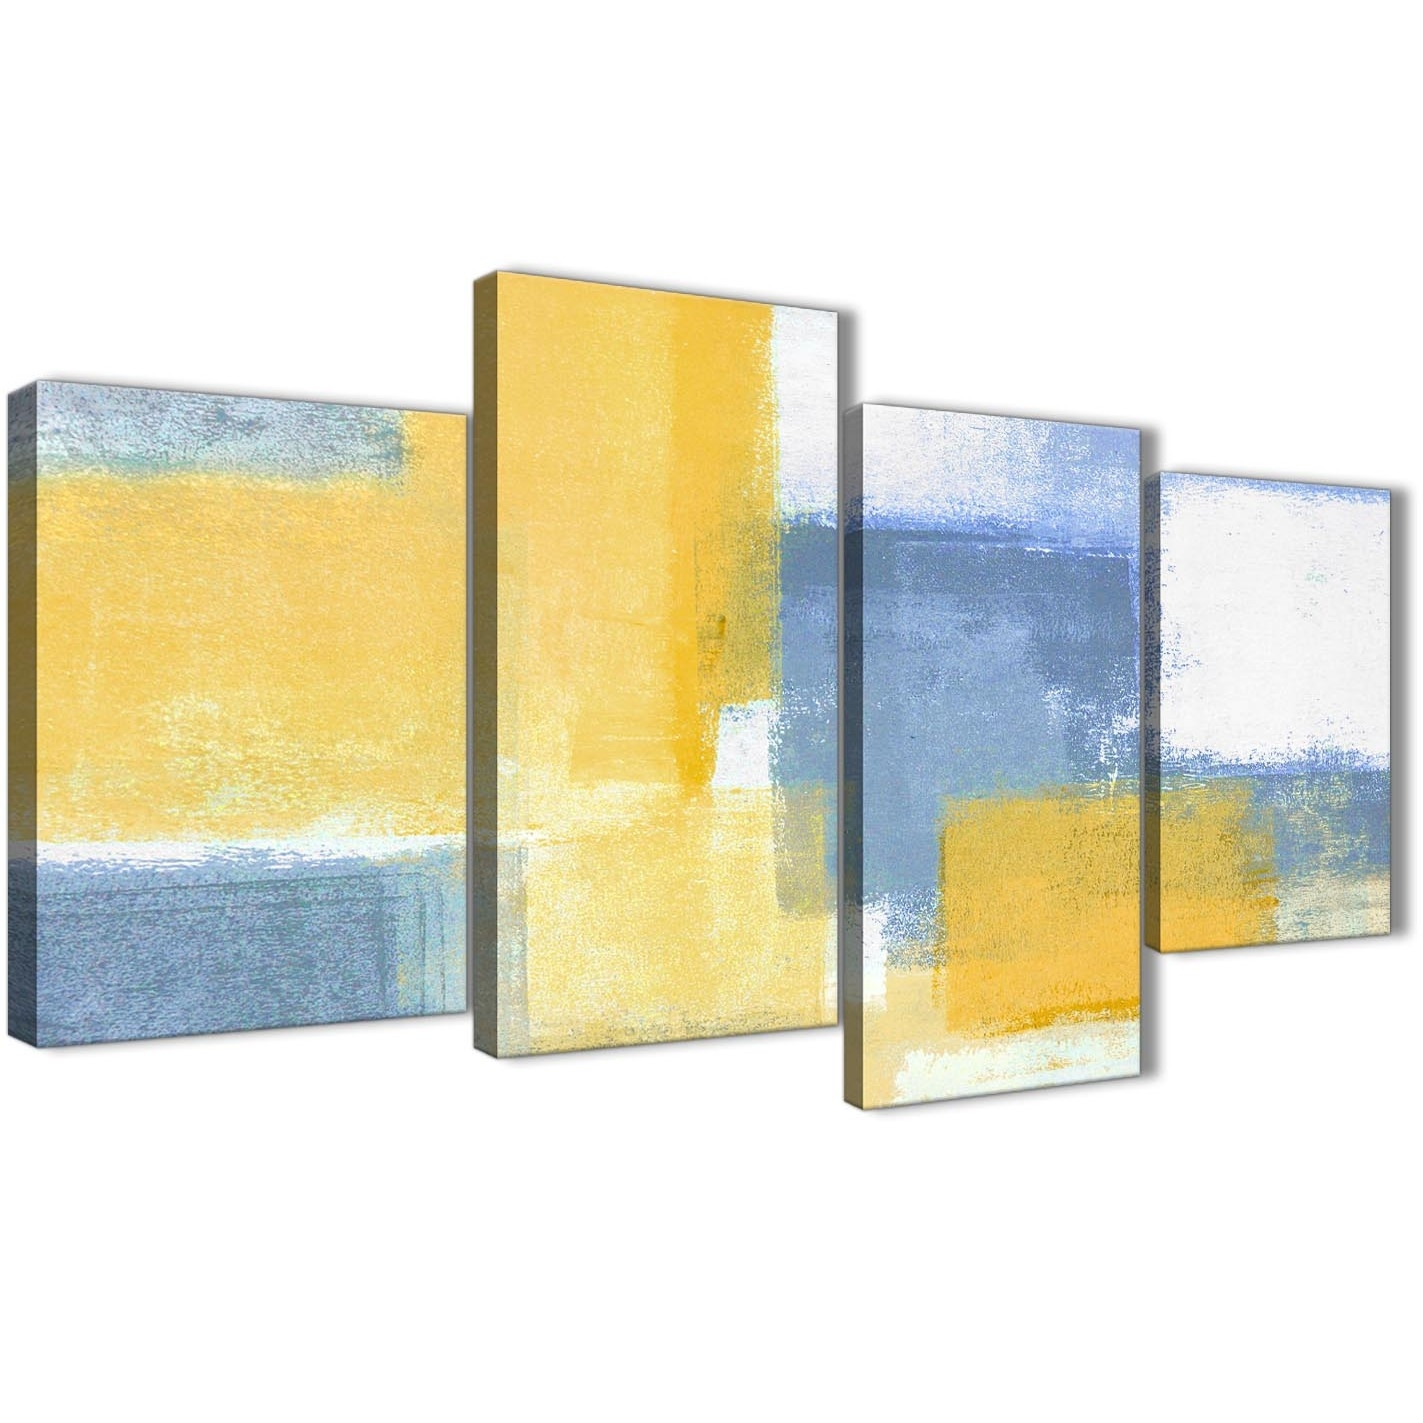 Large Mustard Yellow Blue Abstract Living Room Canvas Pictures Decor Intended For Newest Yellow Wall Art (View 9 of 20)